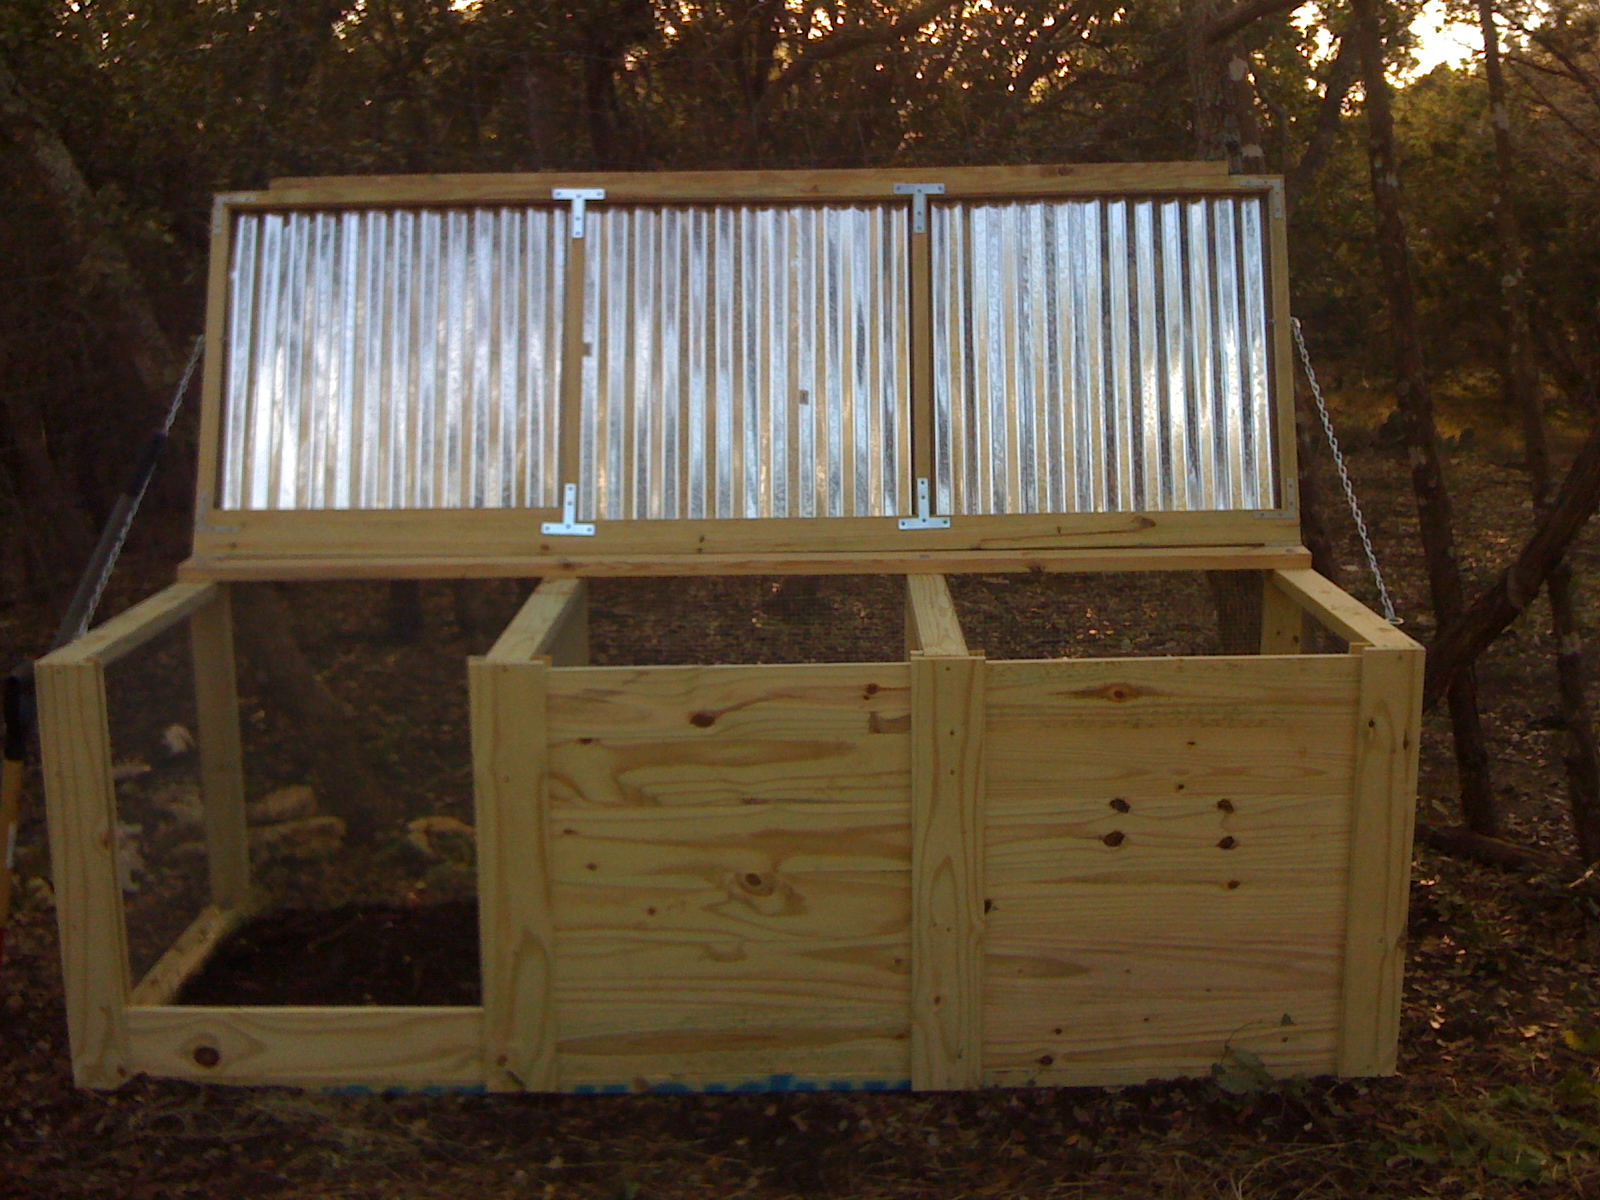 Diy Compost Bin Plans Compost Bin Ryan Boren